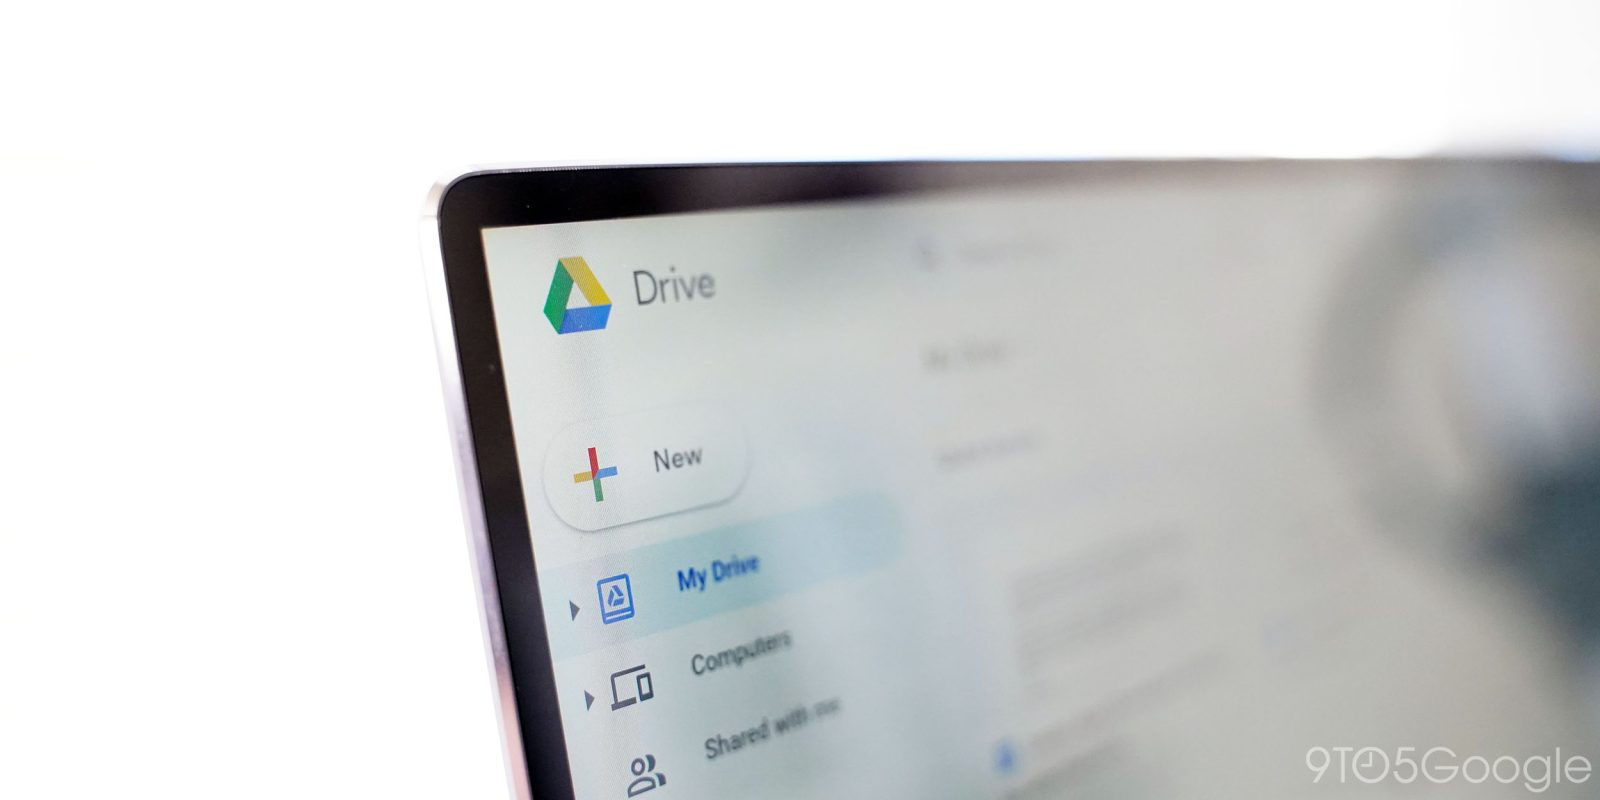 Google Drive File Stream is currently down for some G Suite users